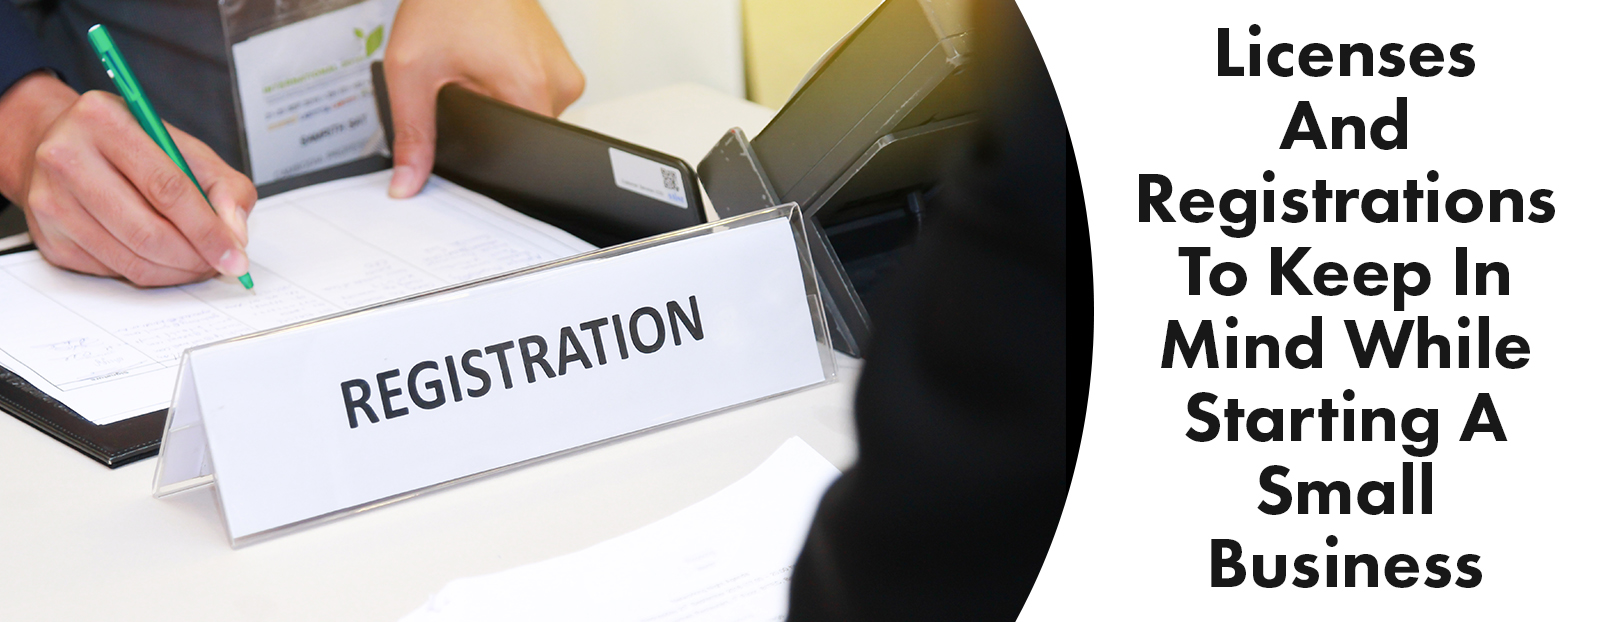 Licenses And Registrations To Keep In Mind While Starting A Small Business